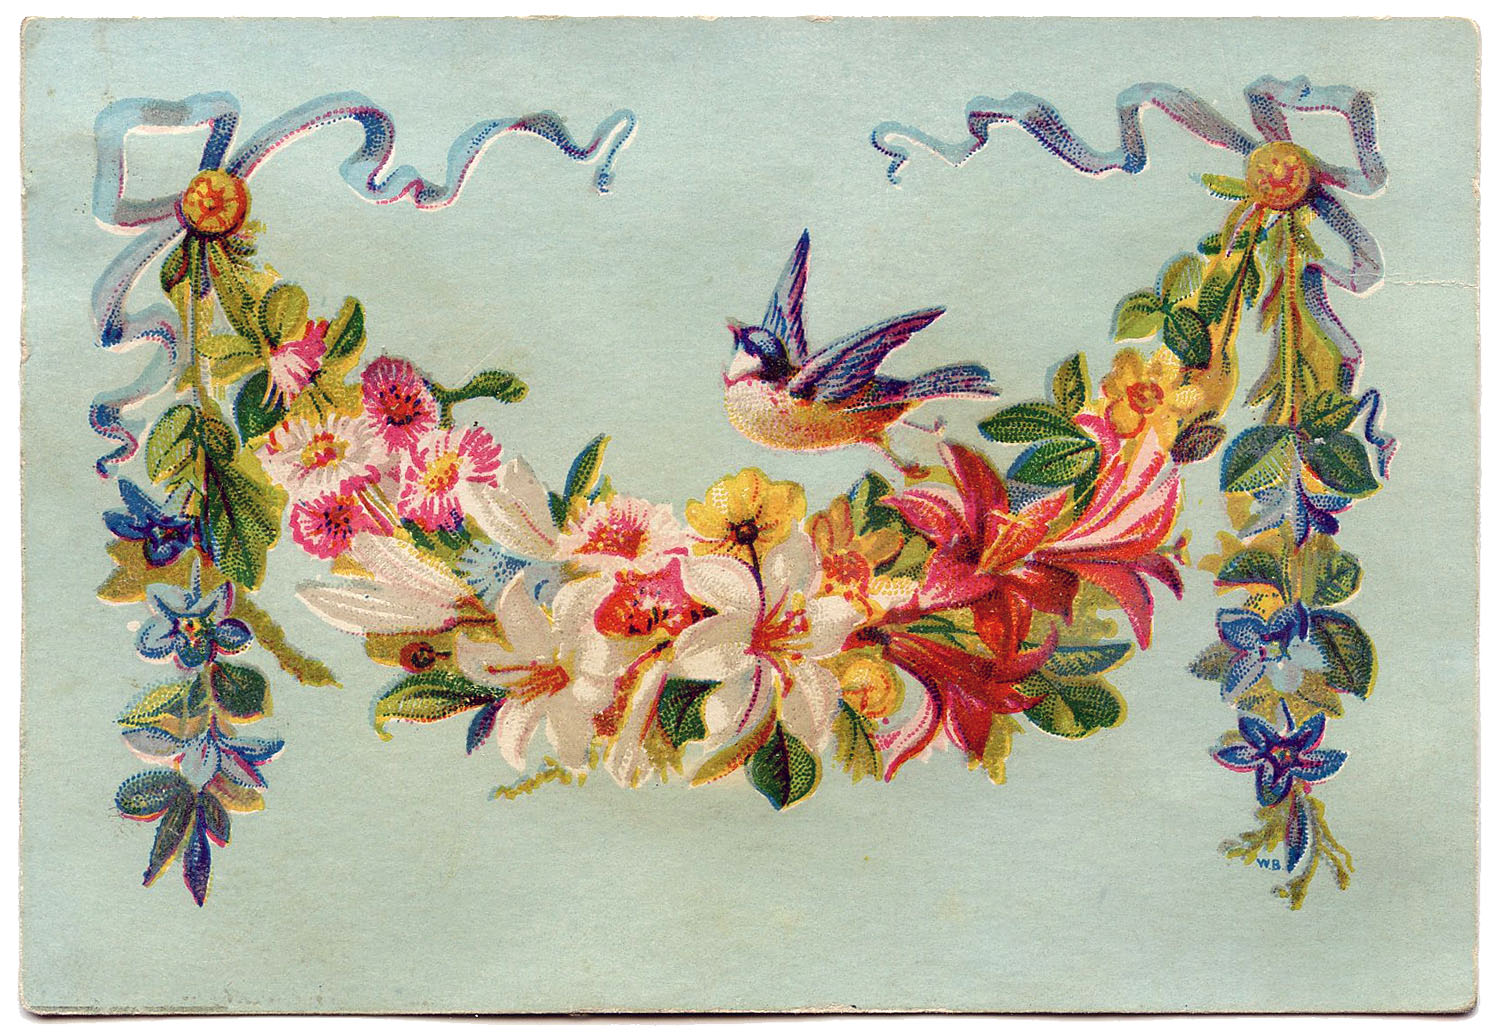 This Is A Pretty Little Card  Shown Above Is A Lovely Floral Garland